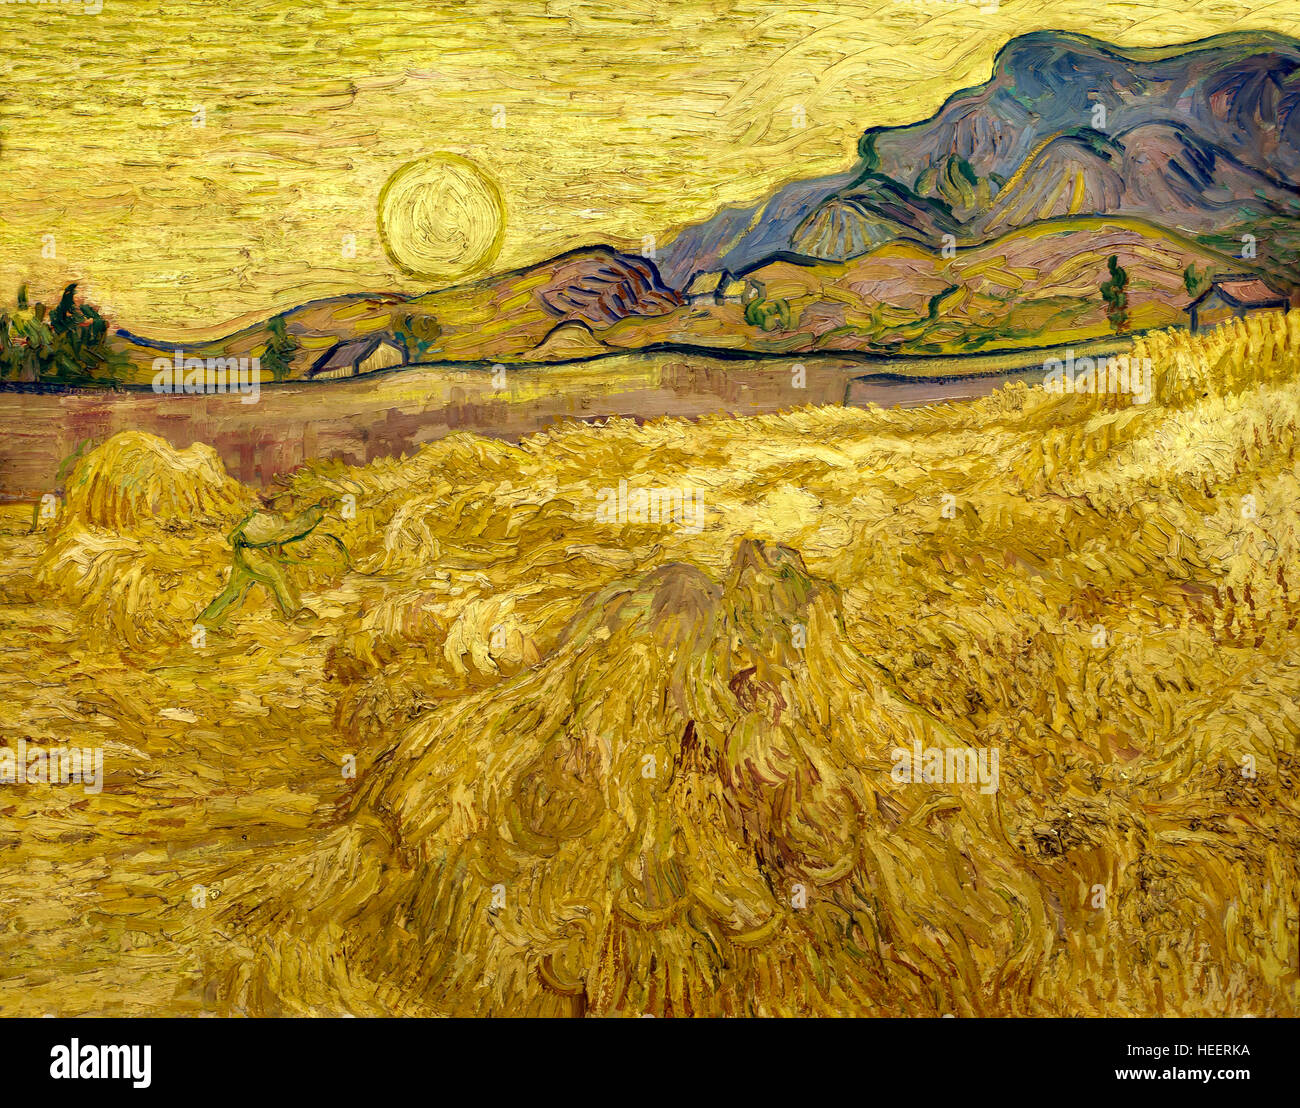 Wheat Field with Reaper and Sun, by Vincent van Gogh, 1889, Kroller-Muller Museum, Hoge Veluwe National Park, Otterlo, - Stock Image